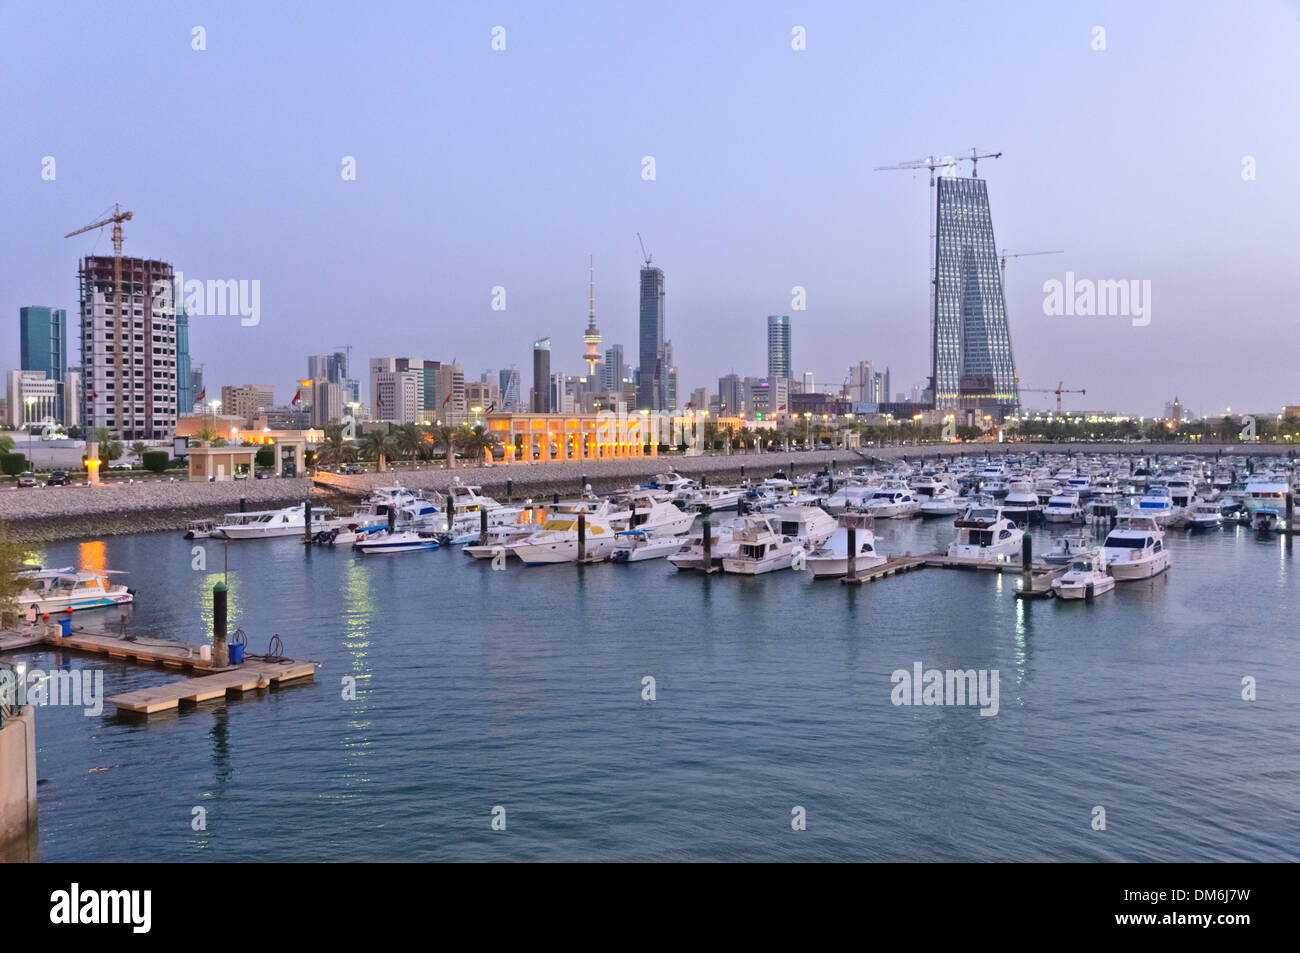 Sultan Mall with marina, Kuwait, Arabian pensinula, Western Asia Stock Photo